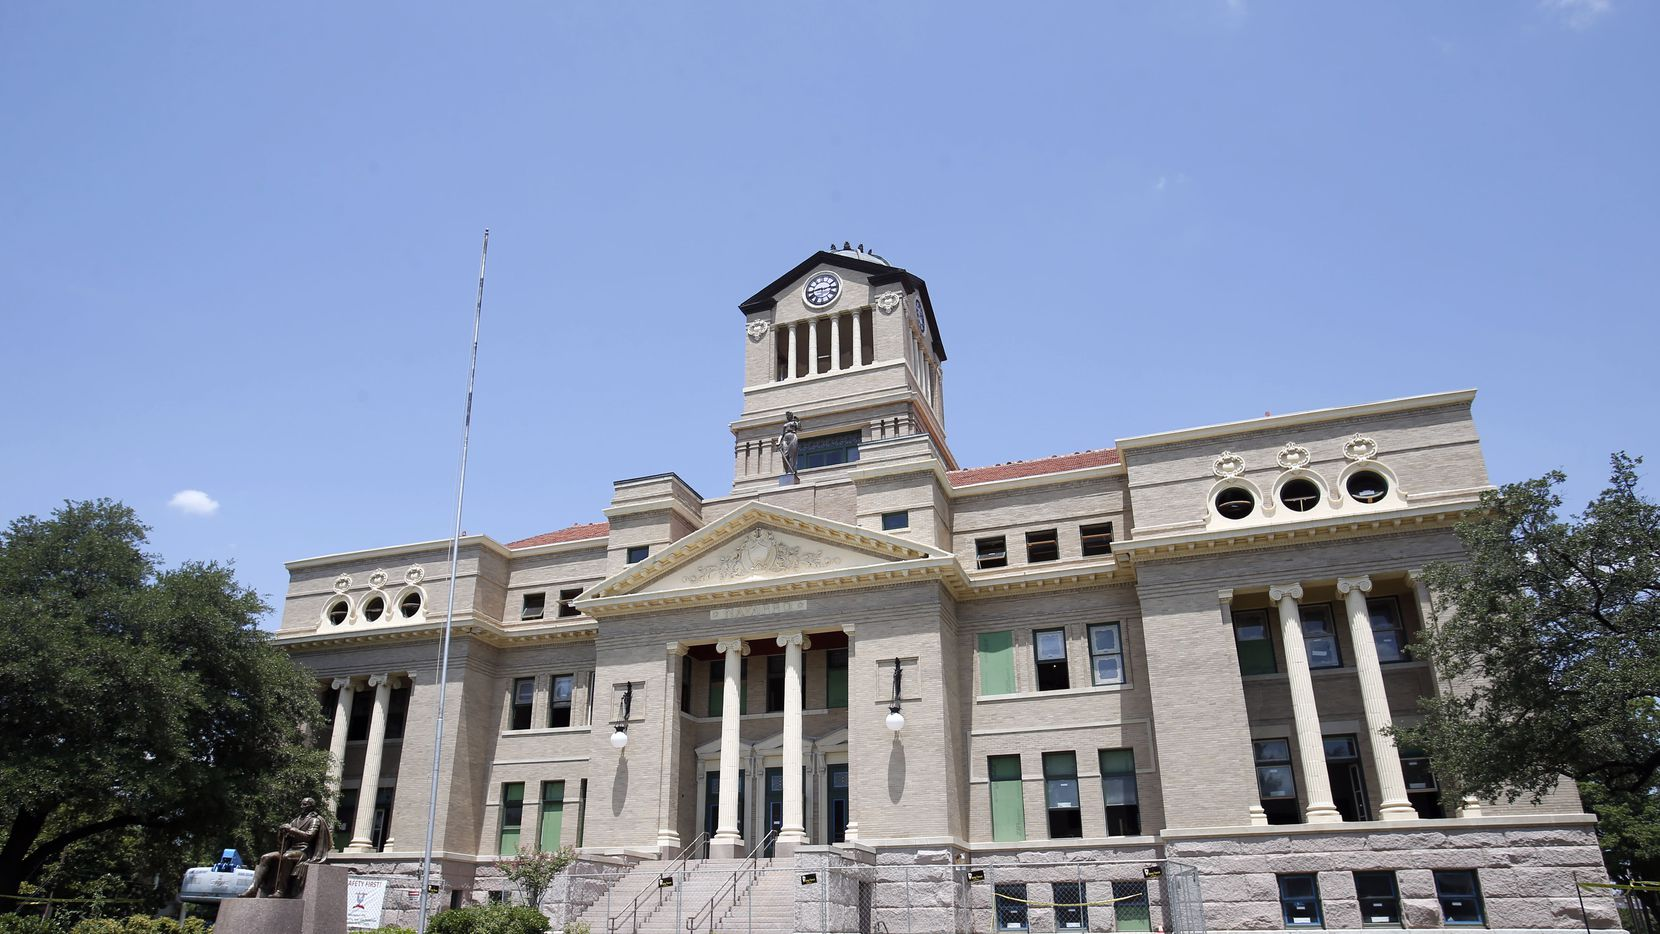 DMN file photo of the Navarro County Courthouse in Corsicana.